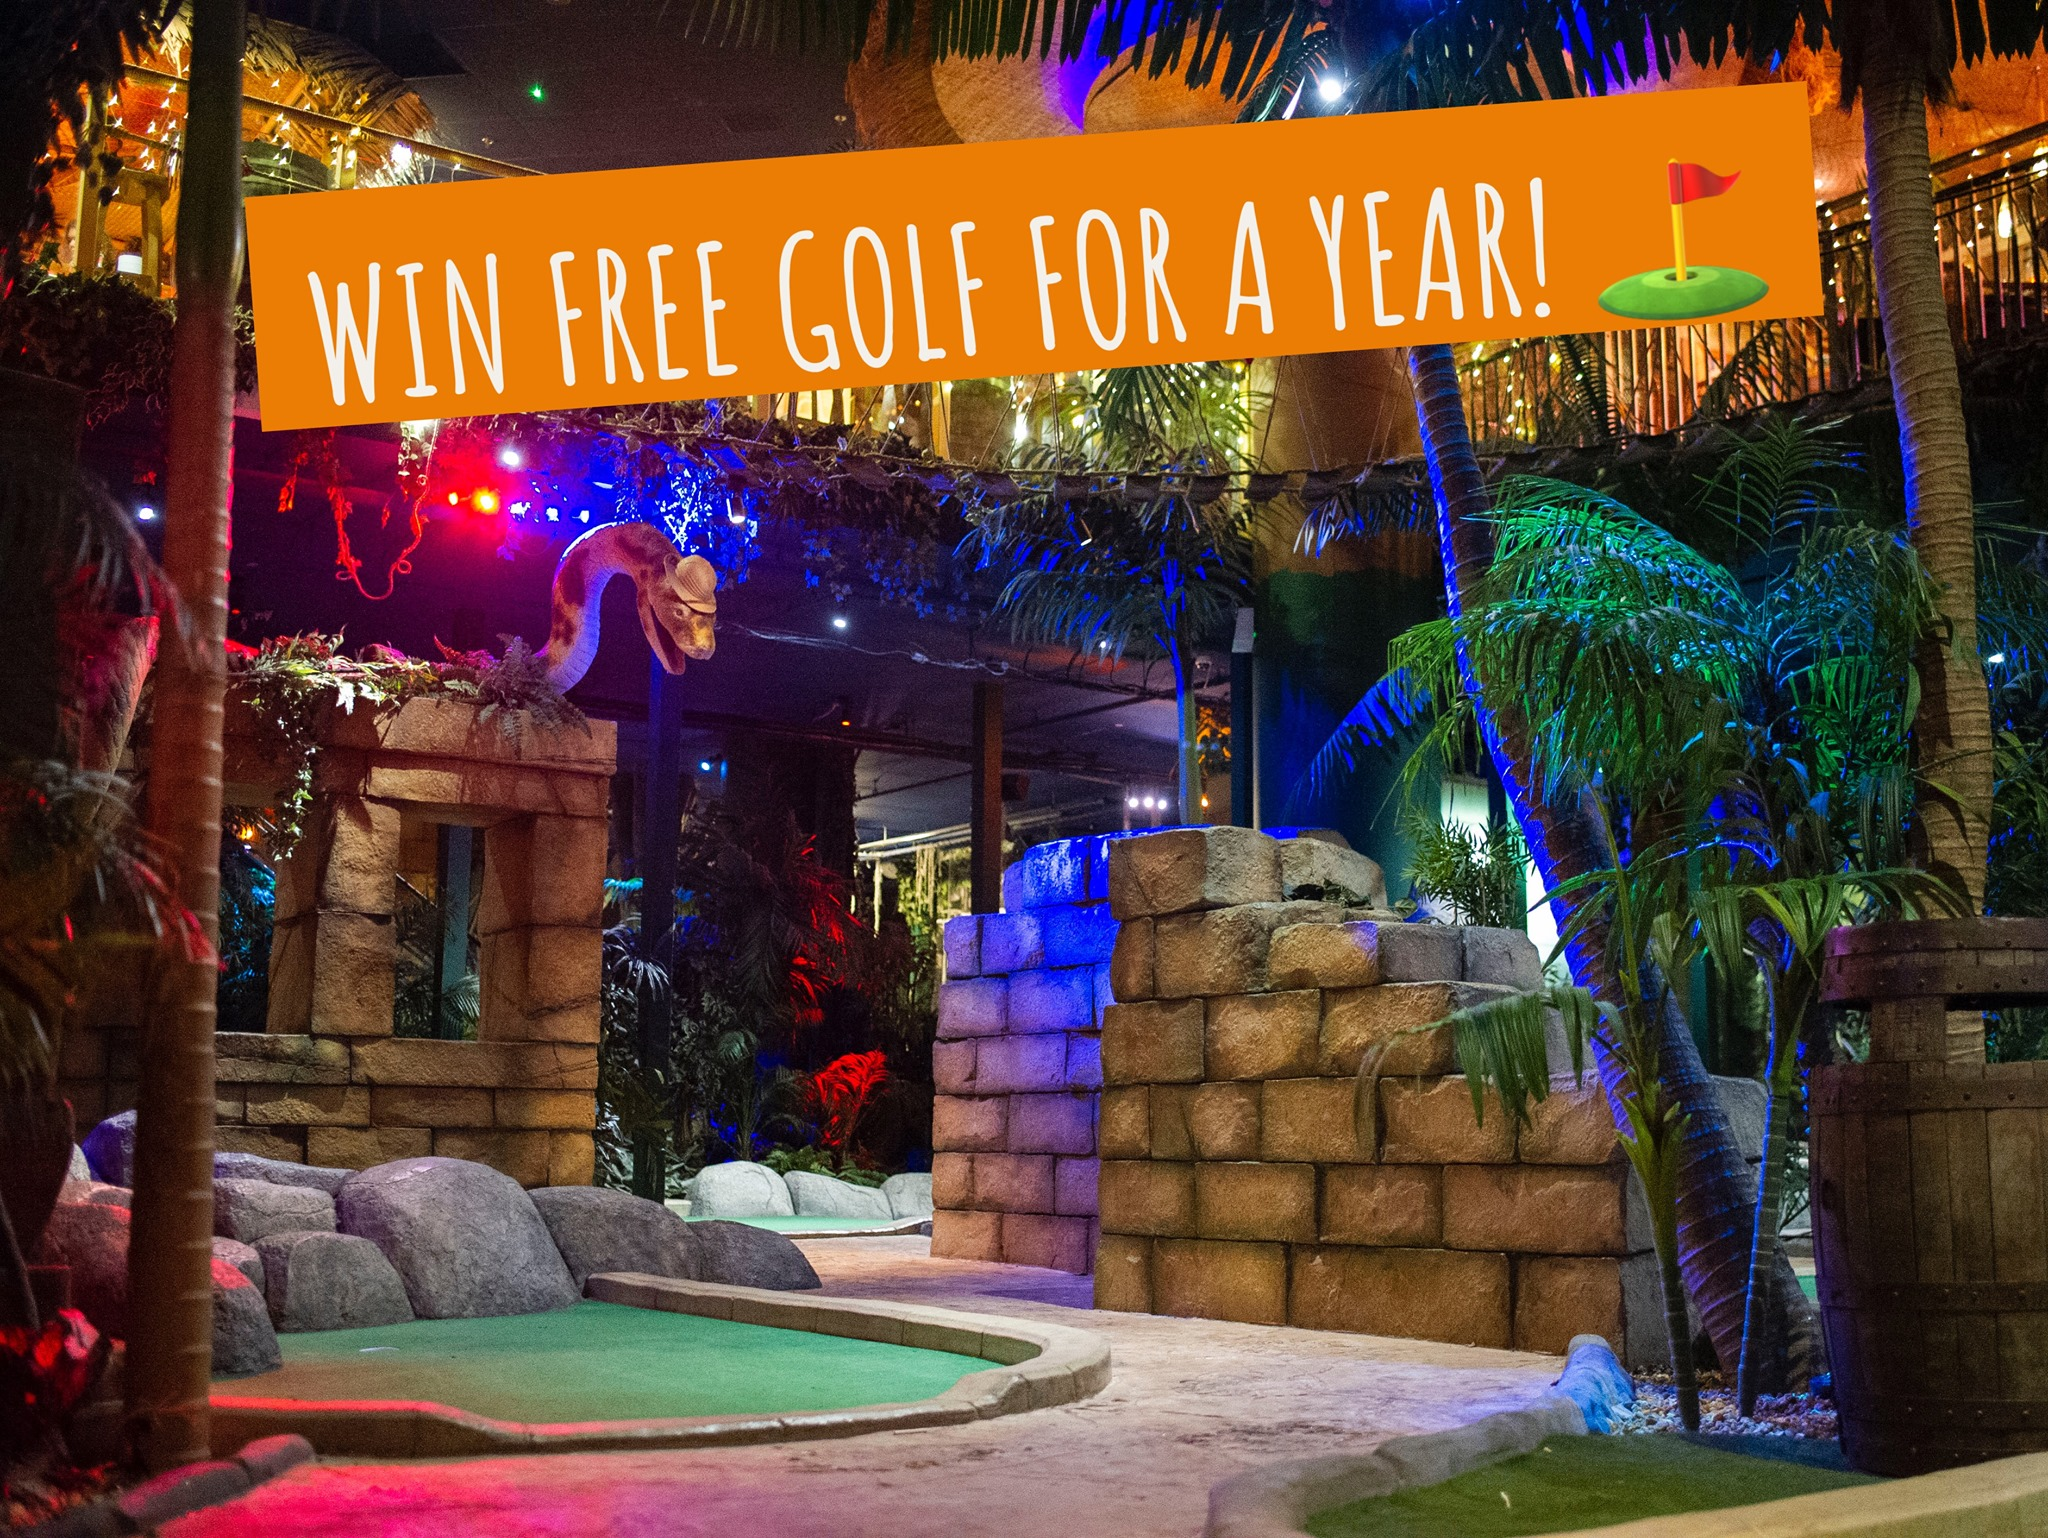 Credit: The Lost City Adventure Golf